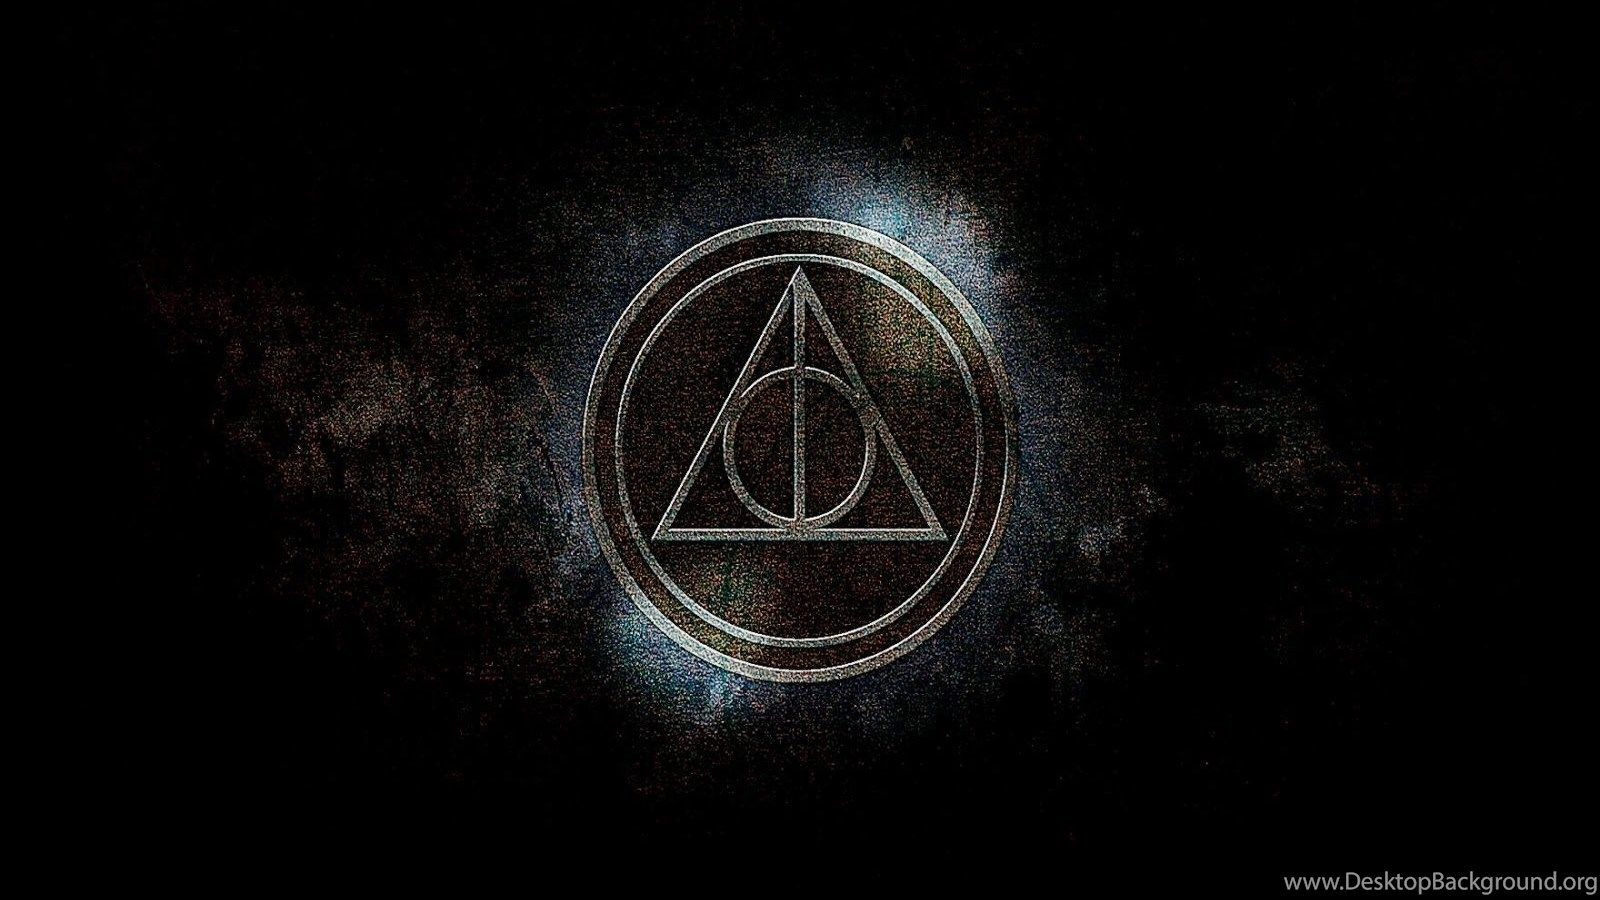 Justpict Com Harry Potter Wallpapers Hd Desktop Background Harry Potter Wallpaper Harry Potter Images Harry Potter Background